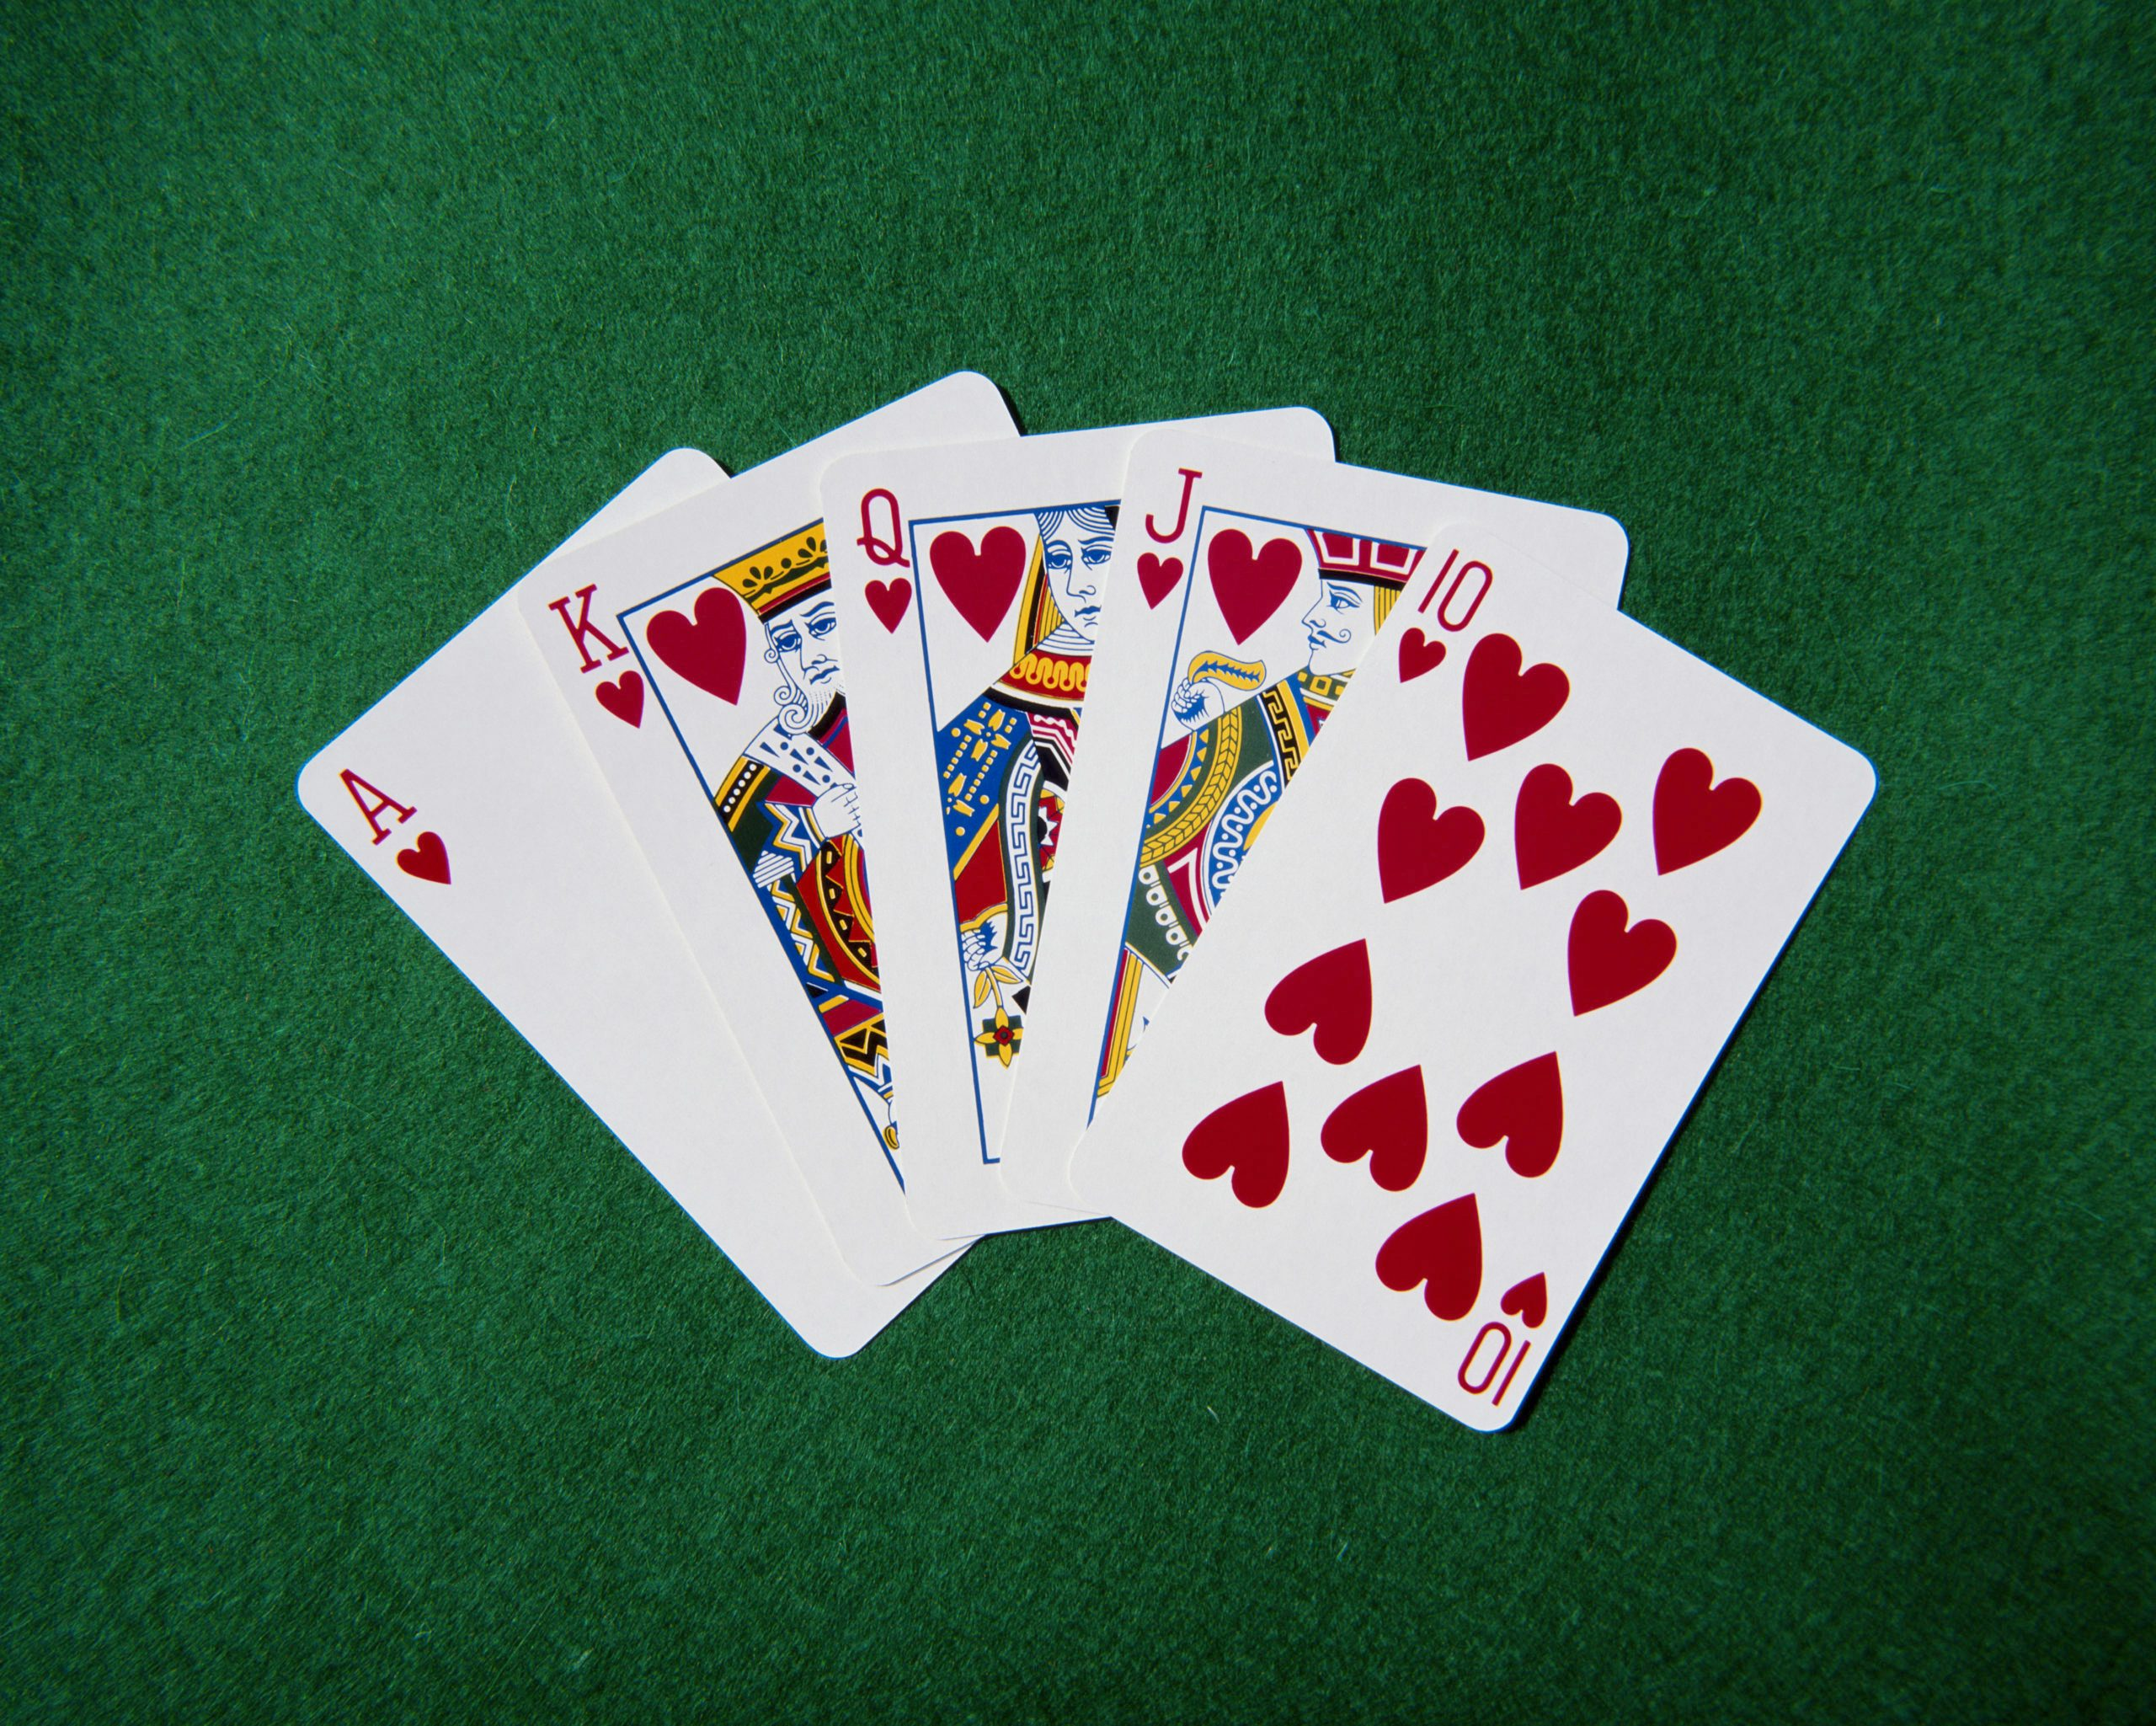 Royal flush hand of cards, hearts suit, on playing baize, close-up